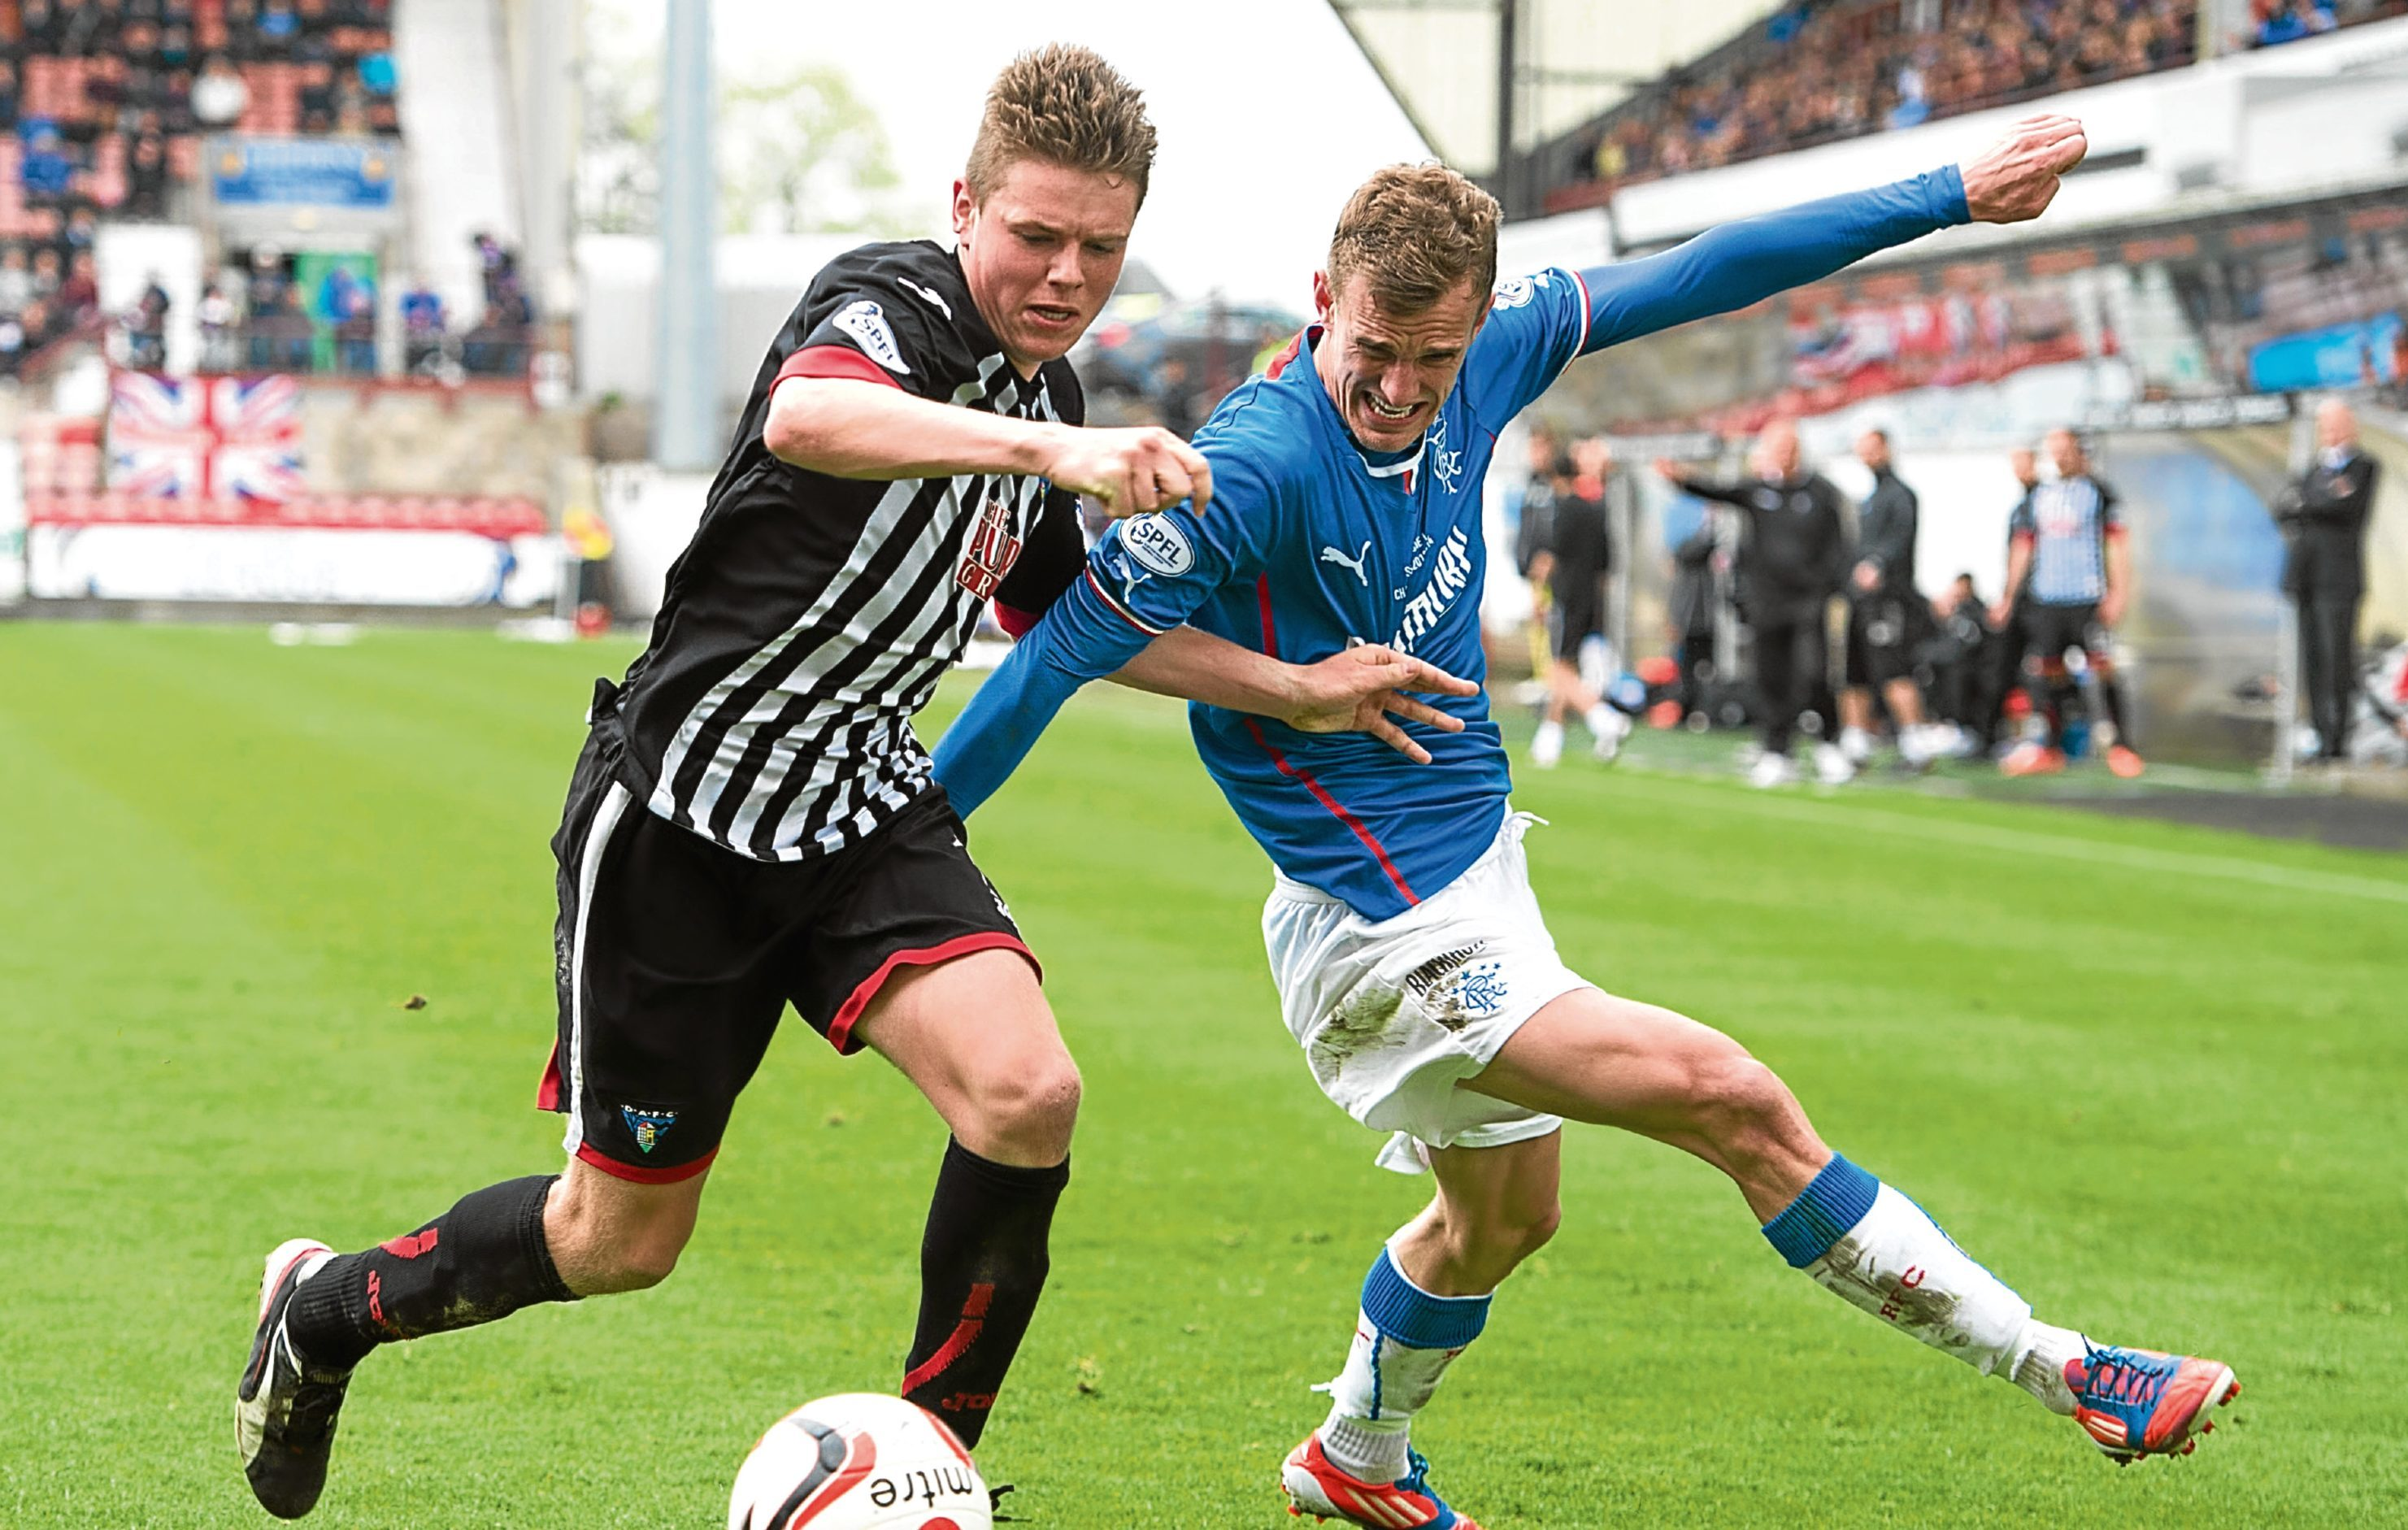 Lewis Spence in League One action for the Pars against Rangers.